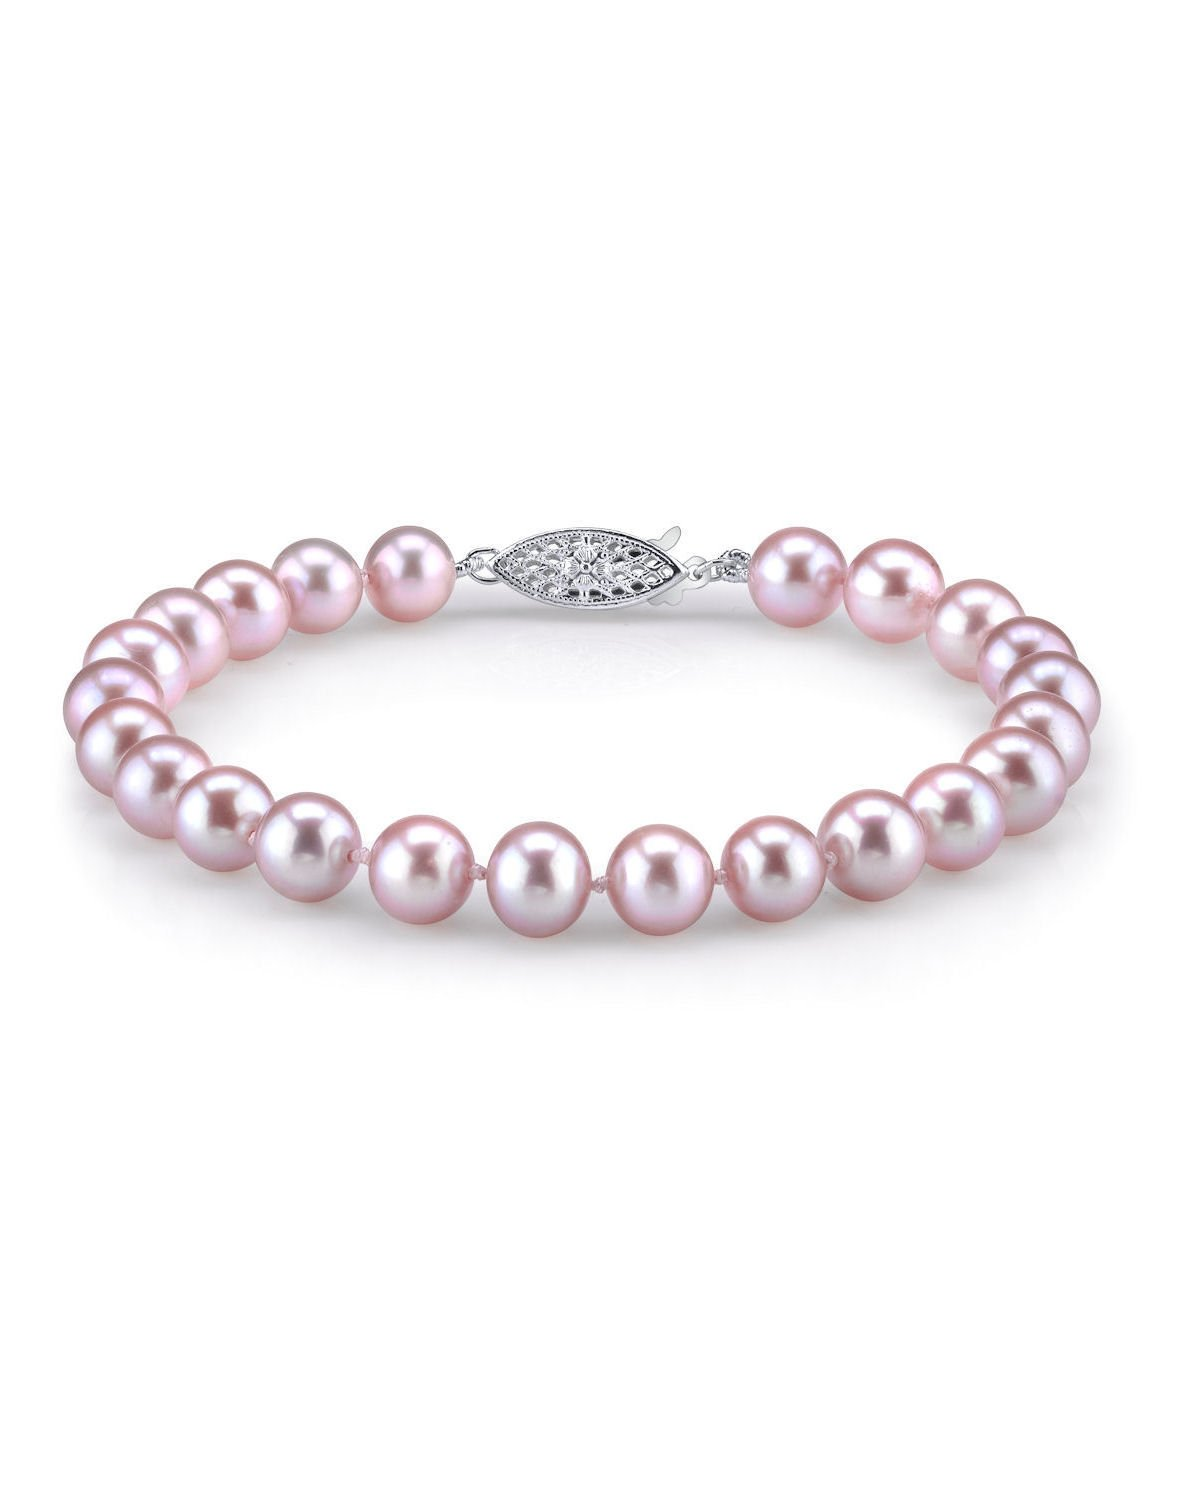 14K Gold 8-9mm Pink Freshwater Cultured Pearl Bracelet - AAAA Quality